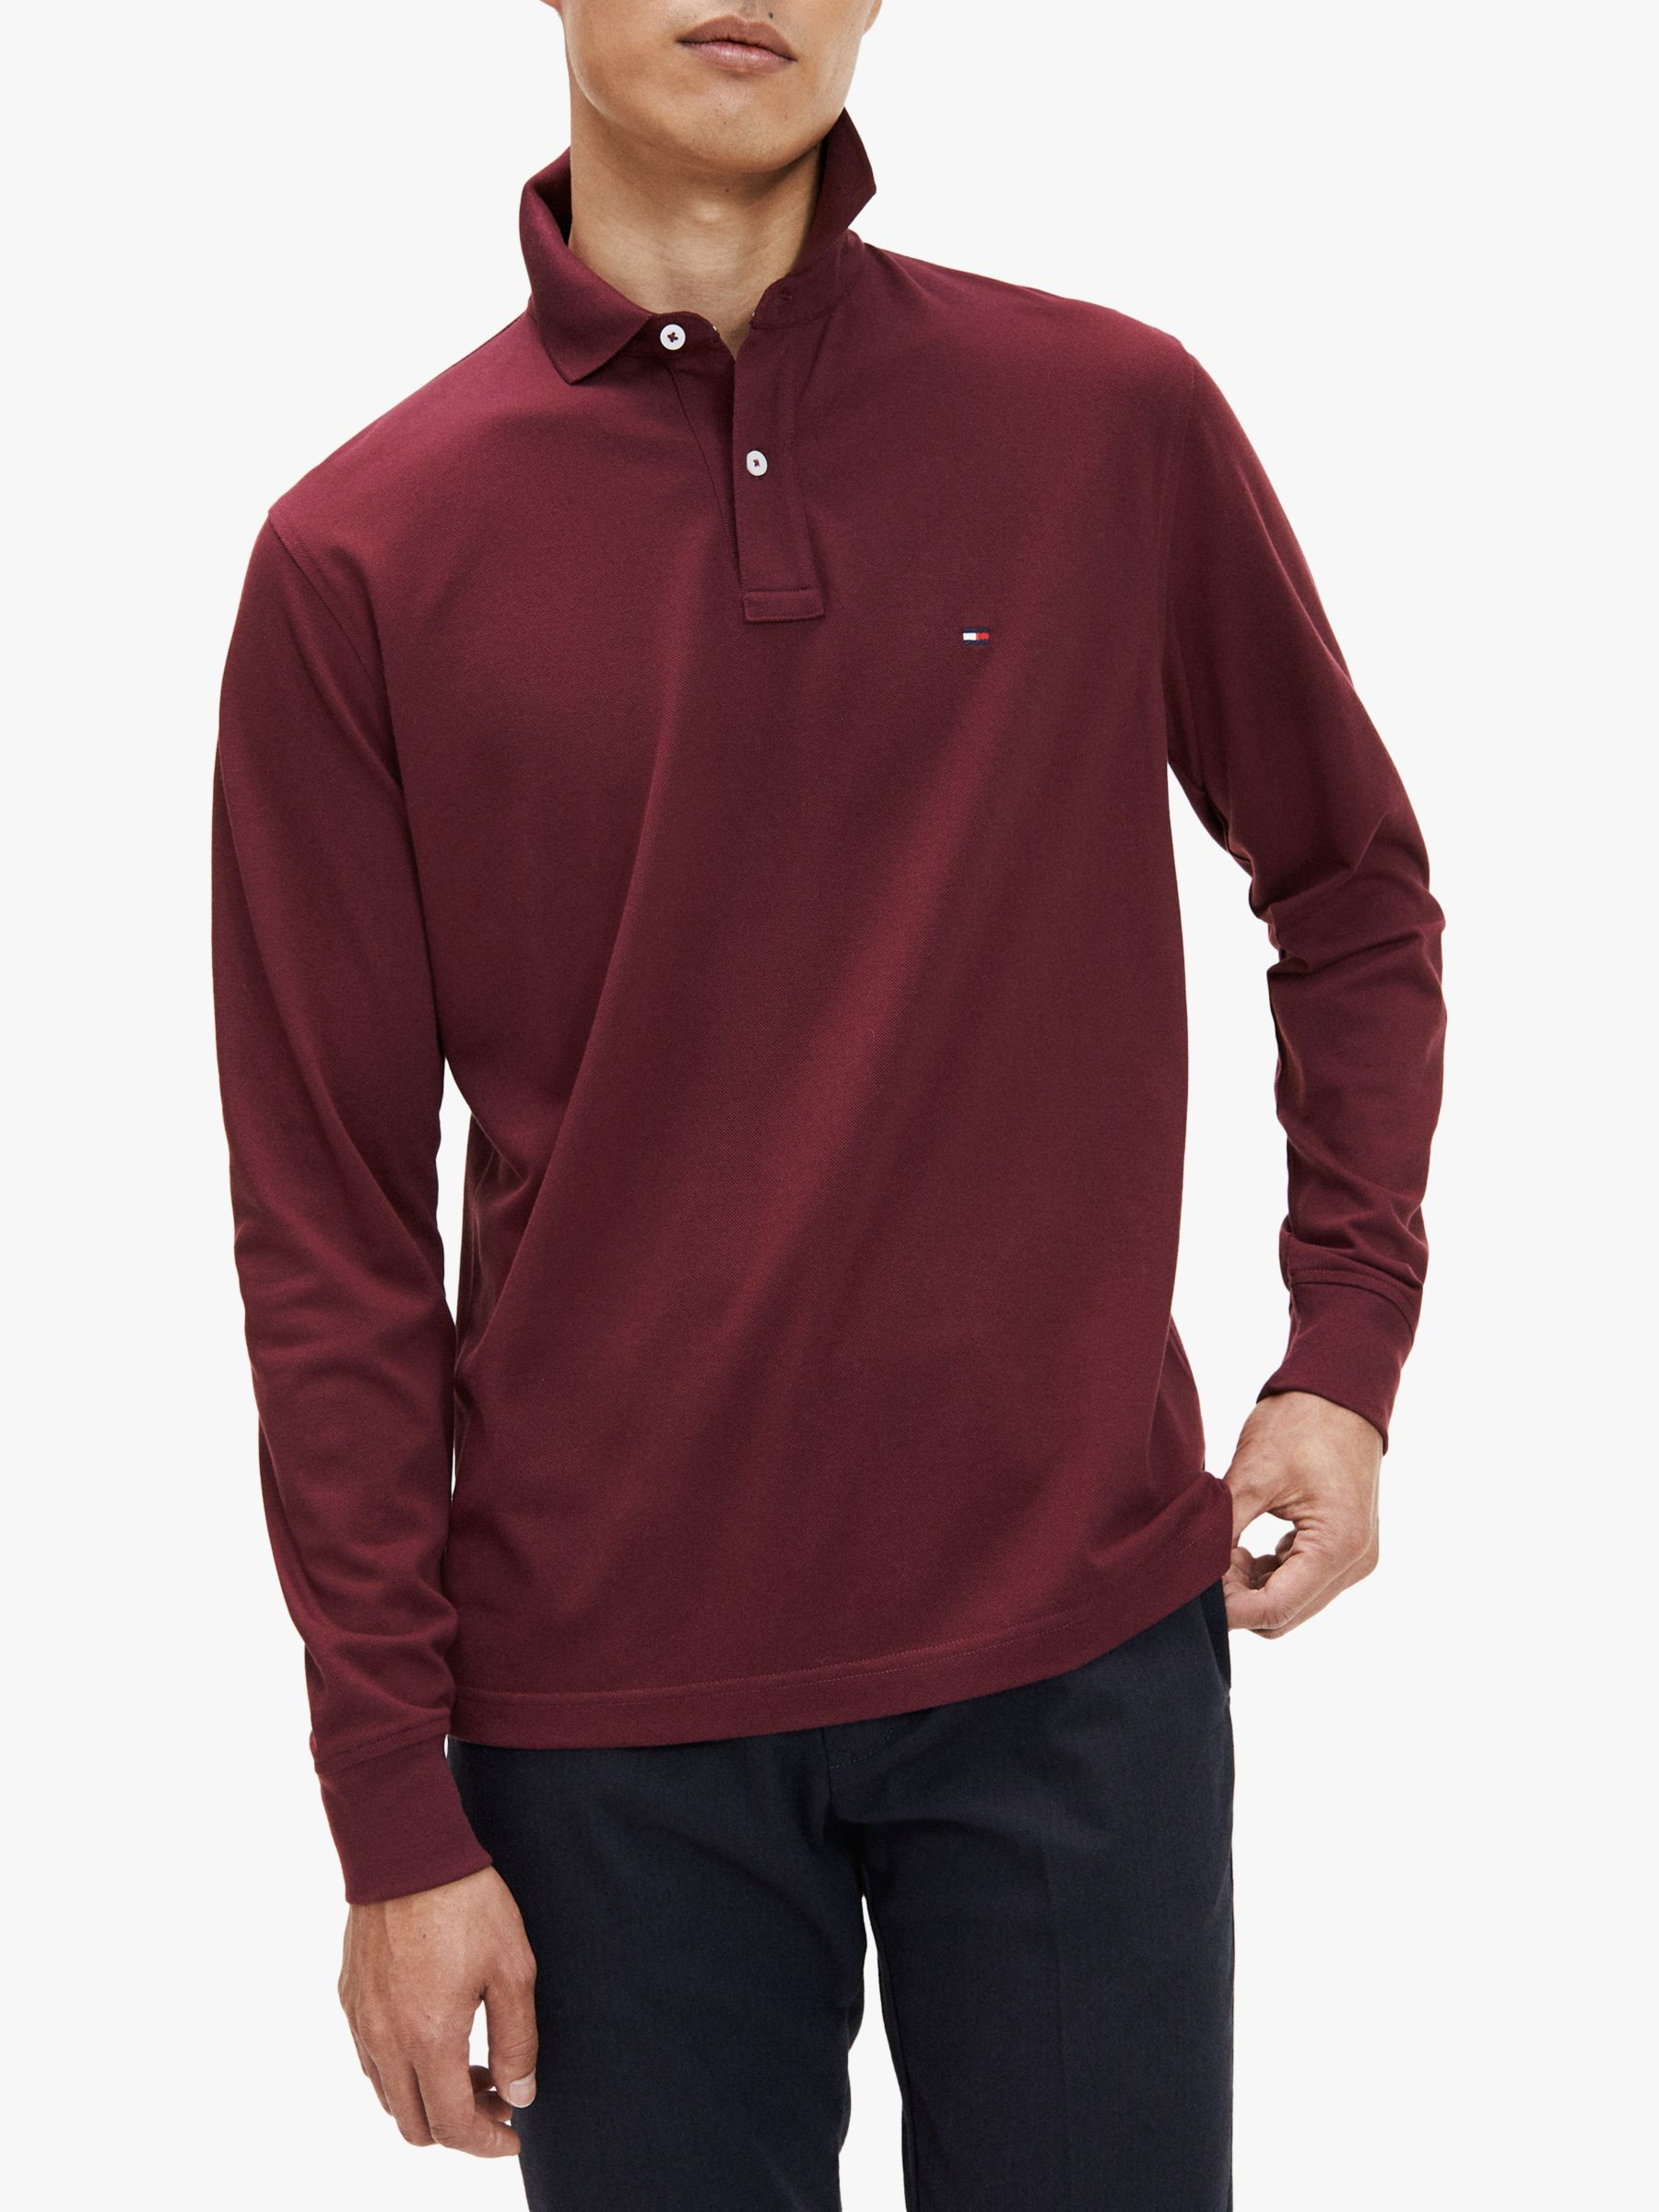 Tommy Hilfiger Mens Long Sleeve Polo Shirt in Classic Fit